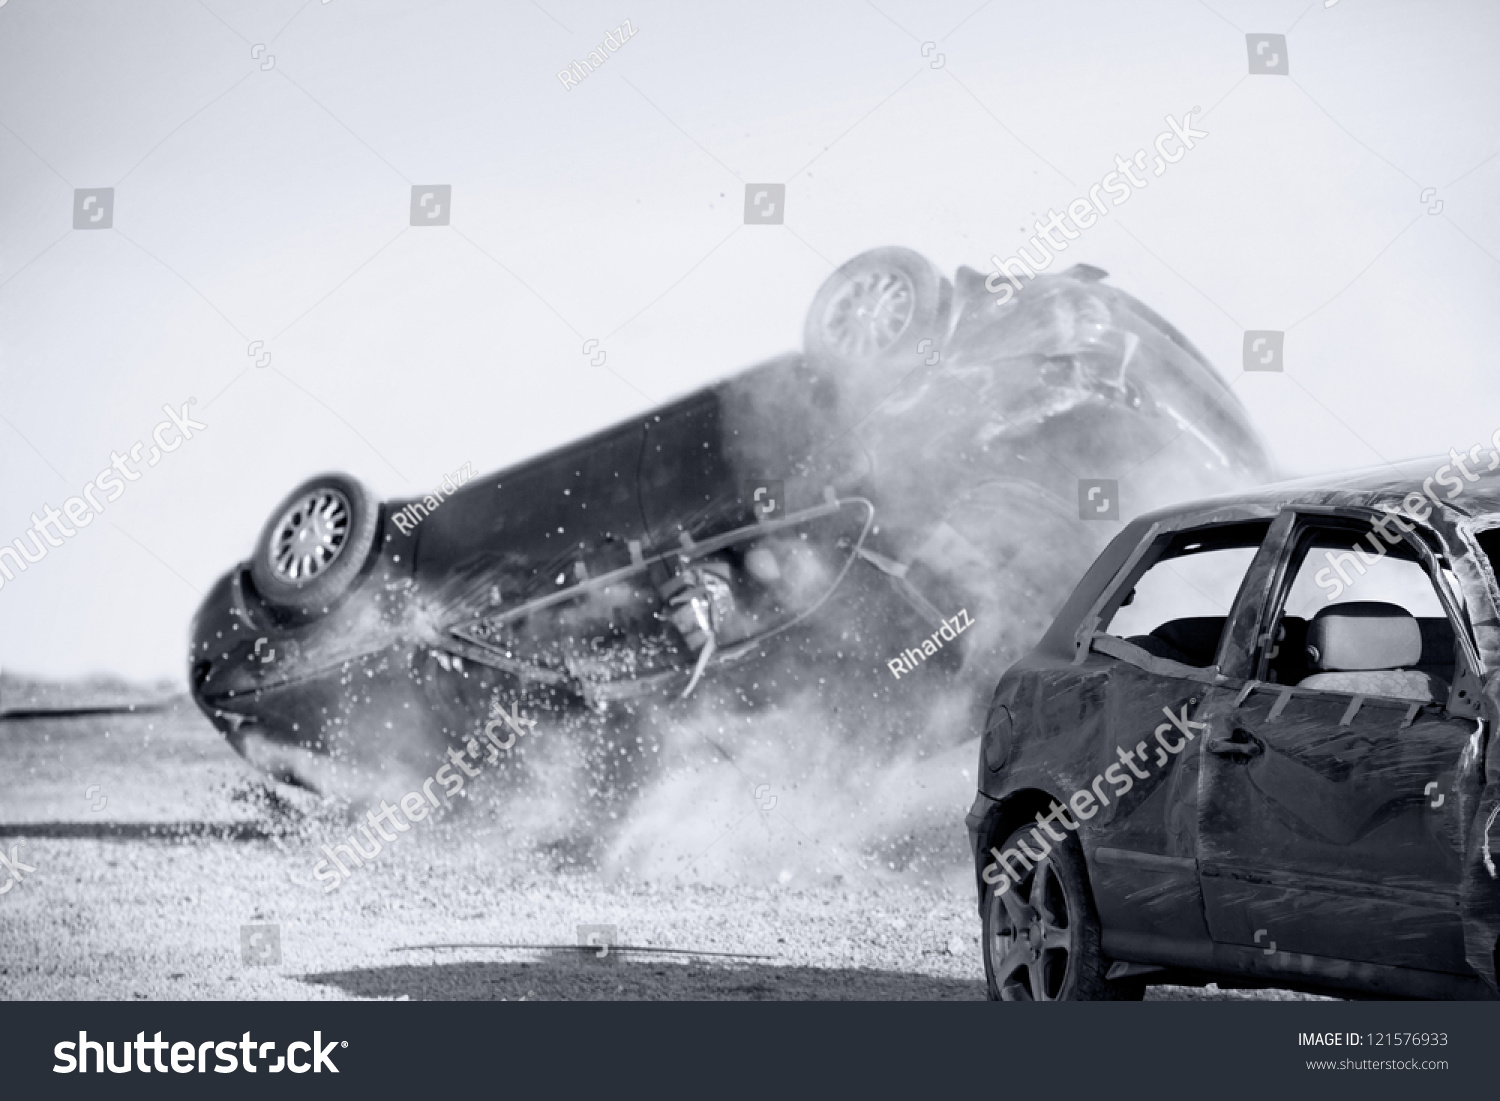 two cars turned upside down after road collision monohromatic stock photo 121576933 shutterstock. Black Bedroom Furniture Sets. Home Design Ideas